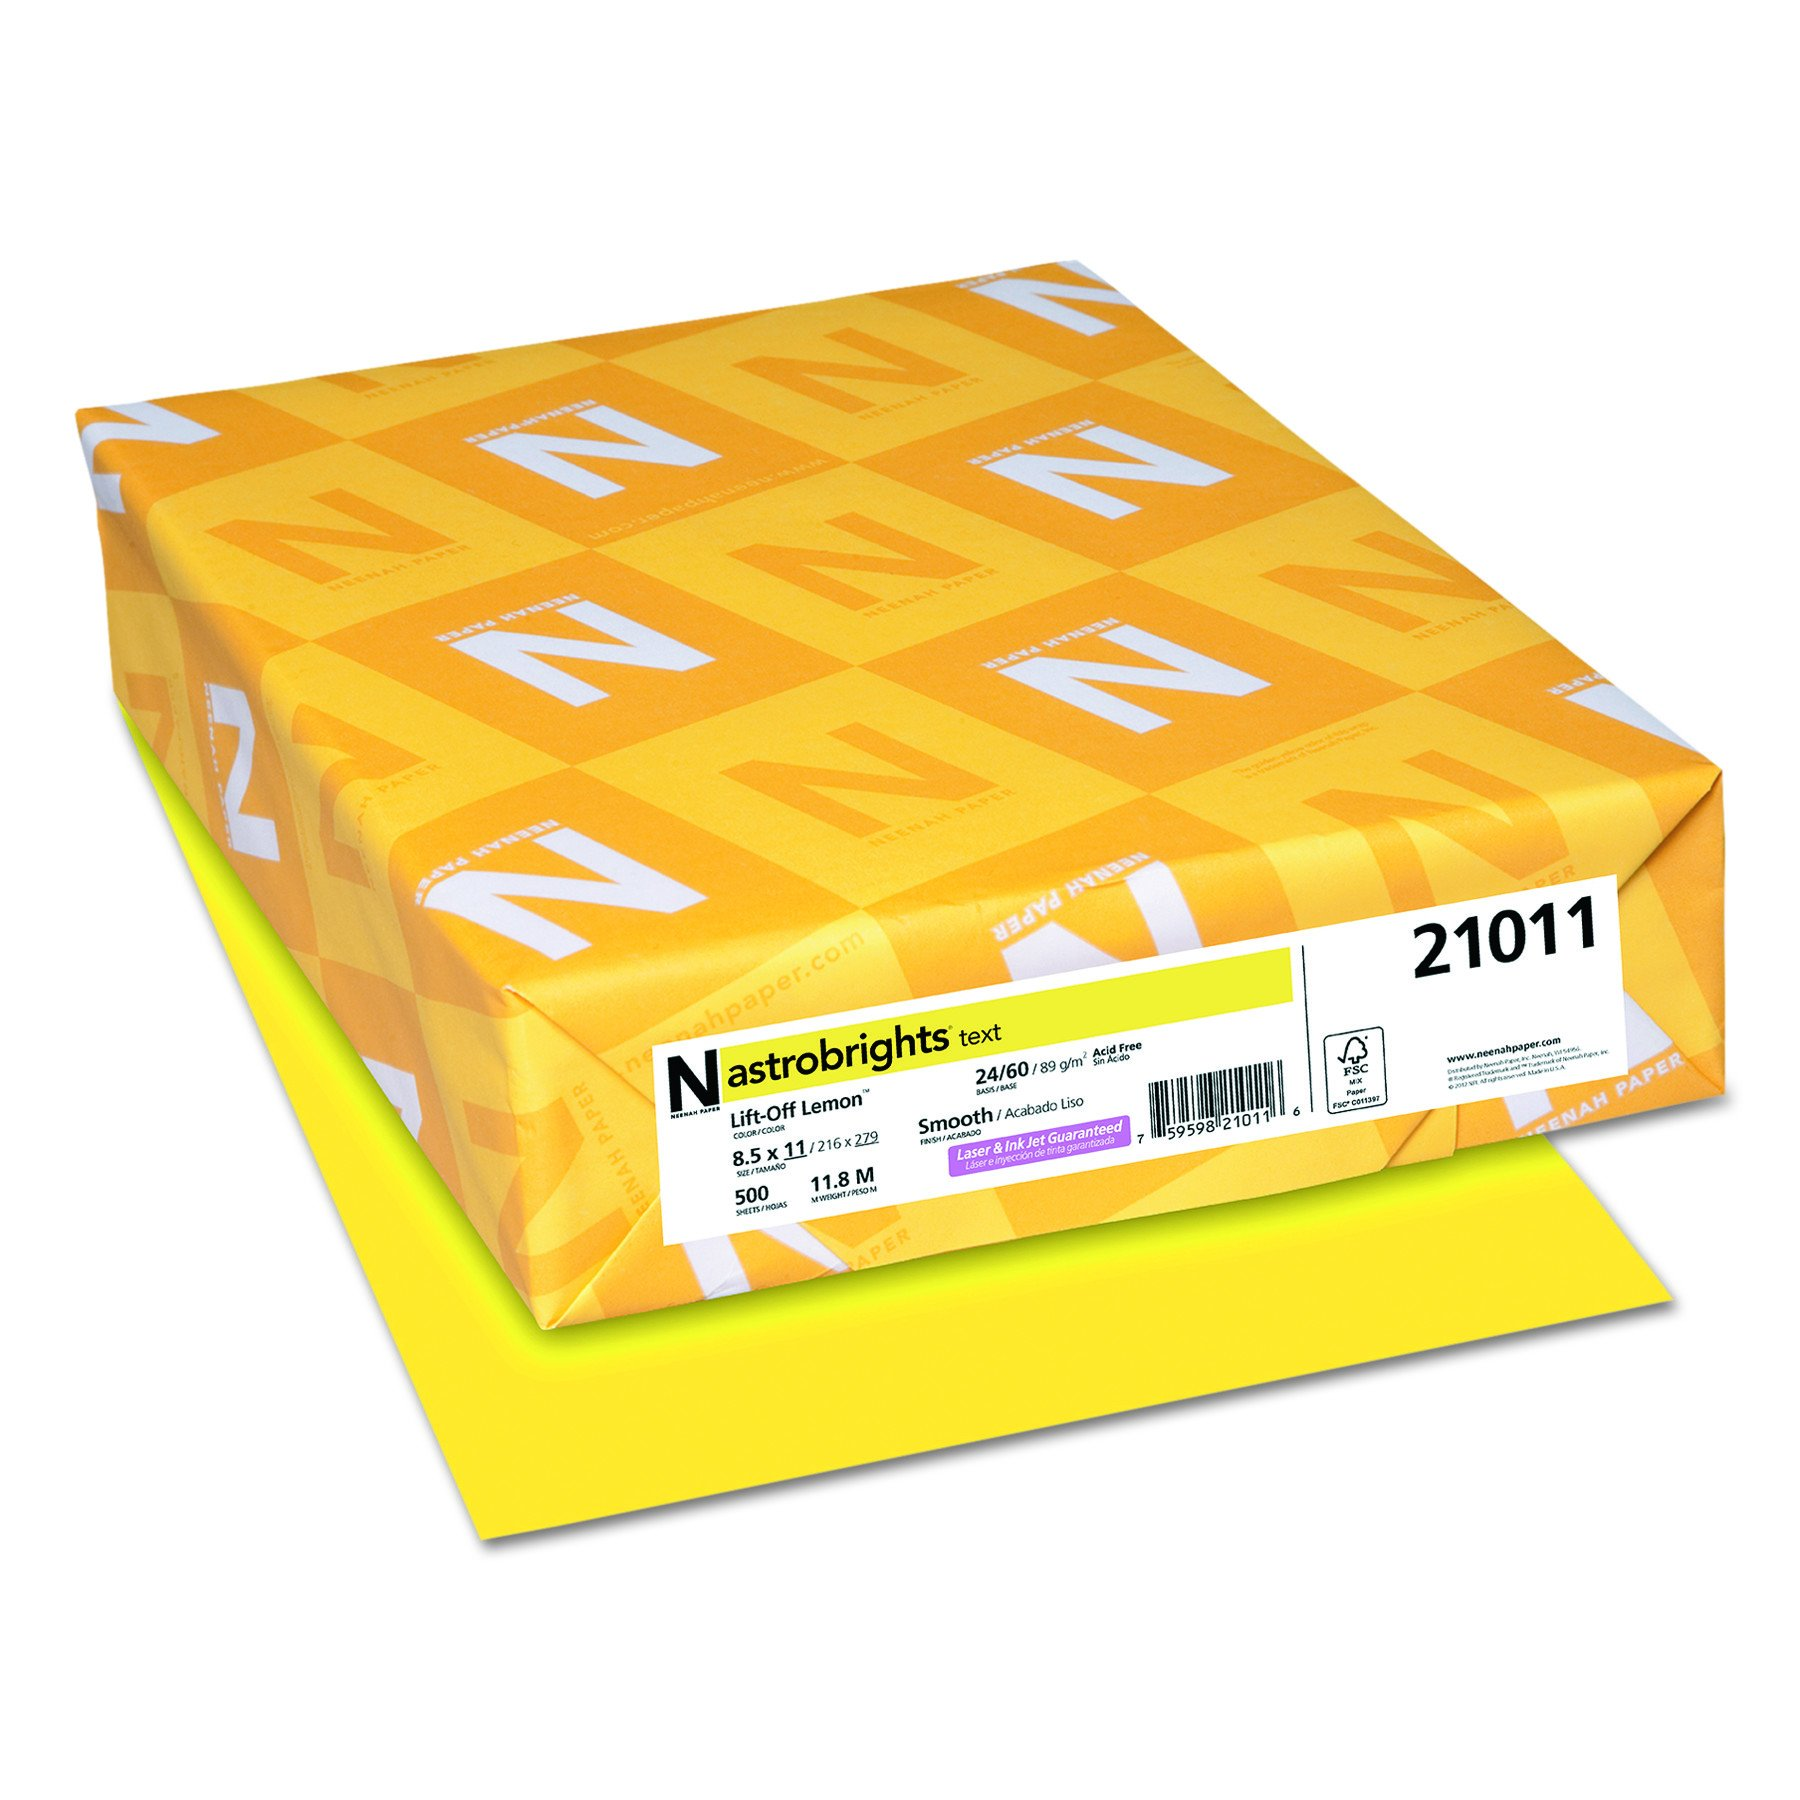 Wausau Astrobrights Heavy Duty Paper, 24 lb, 8.5 x 11 Inches, Lift-Off Lemon, 500 Sheets (22631) by Wausau